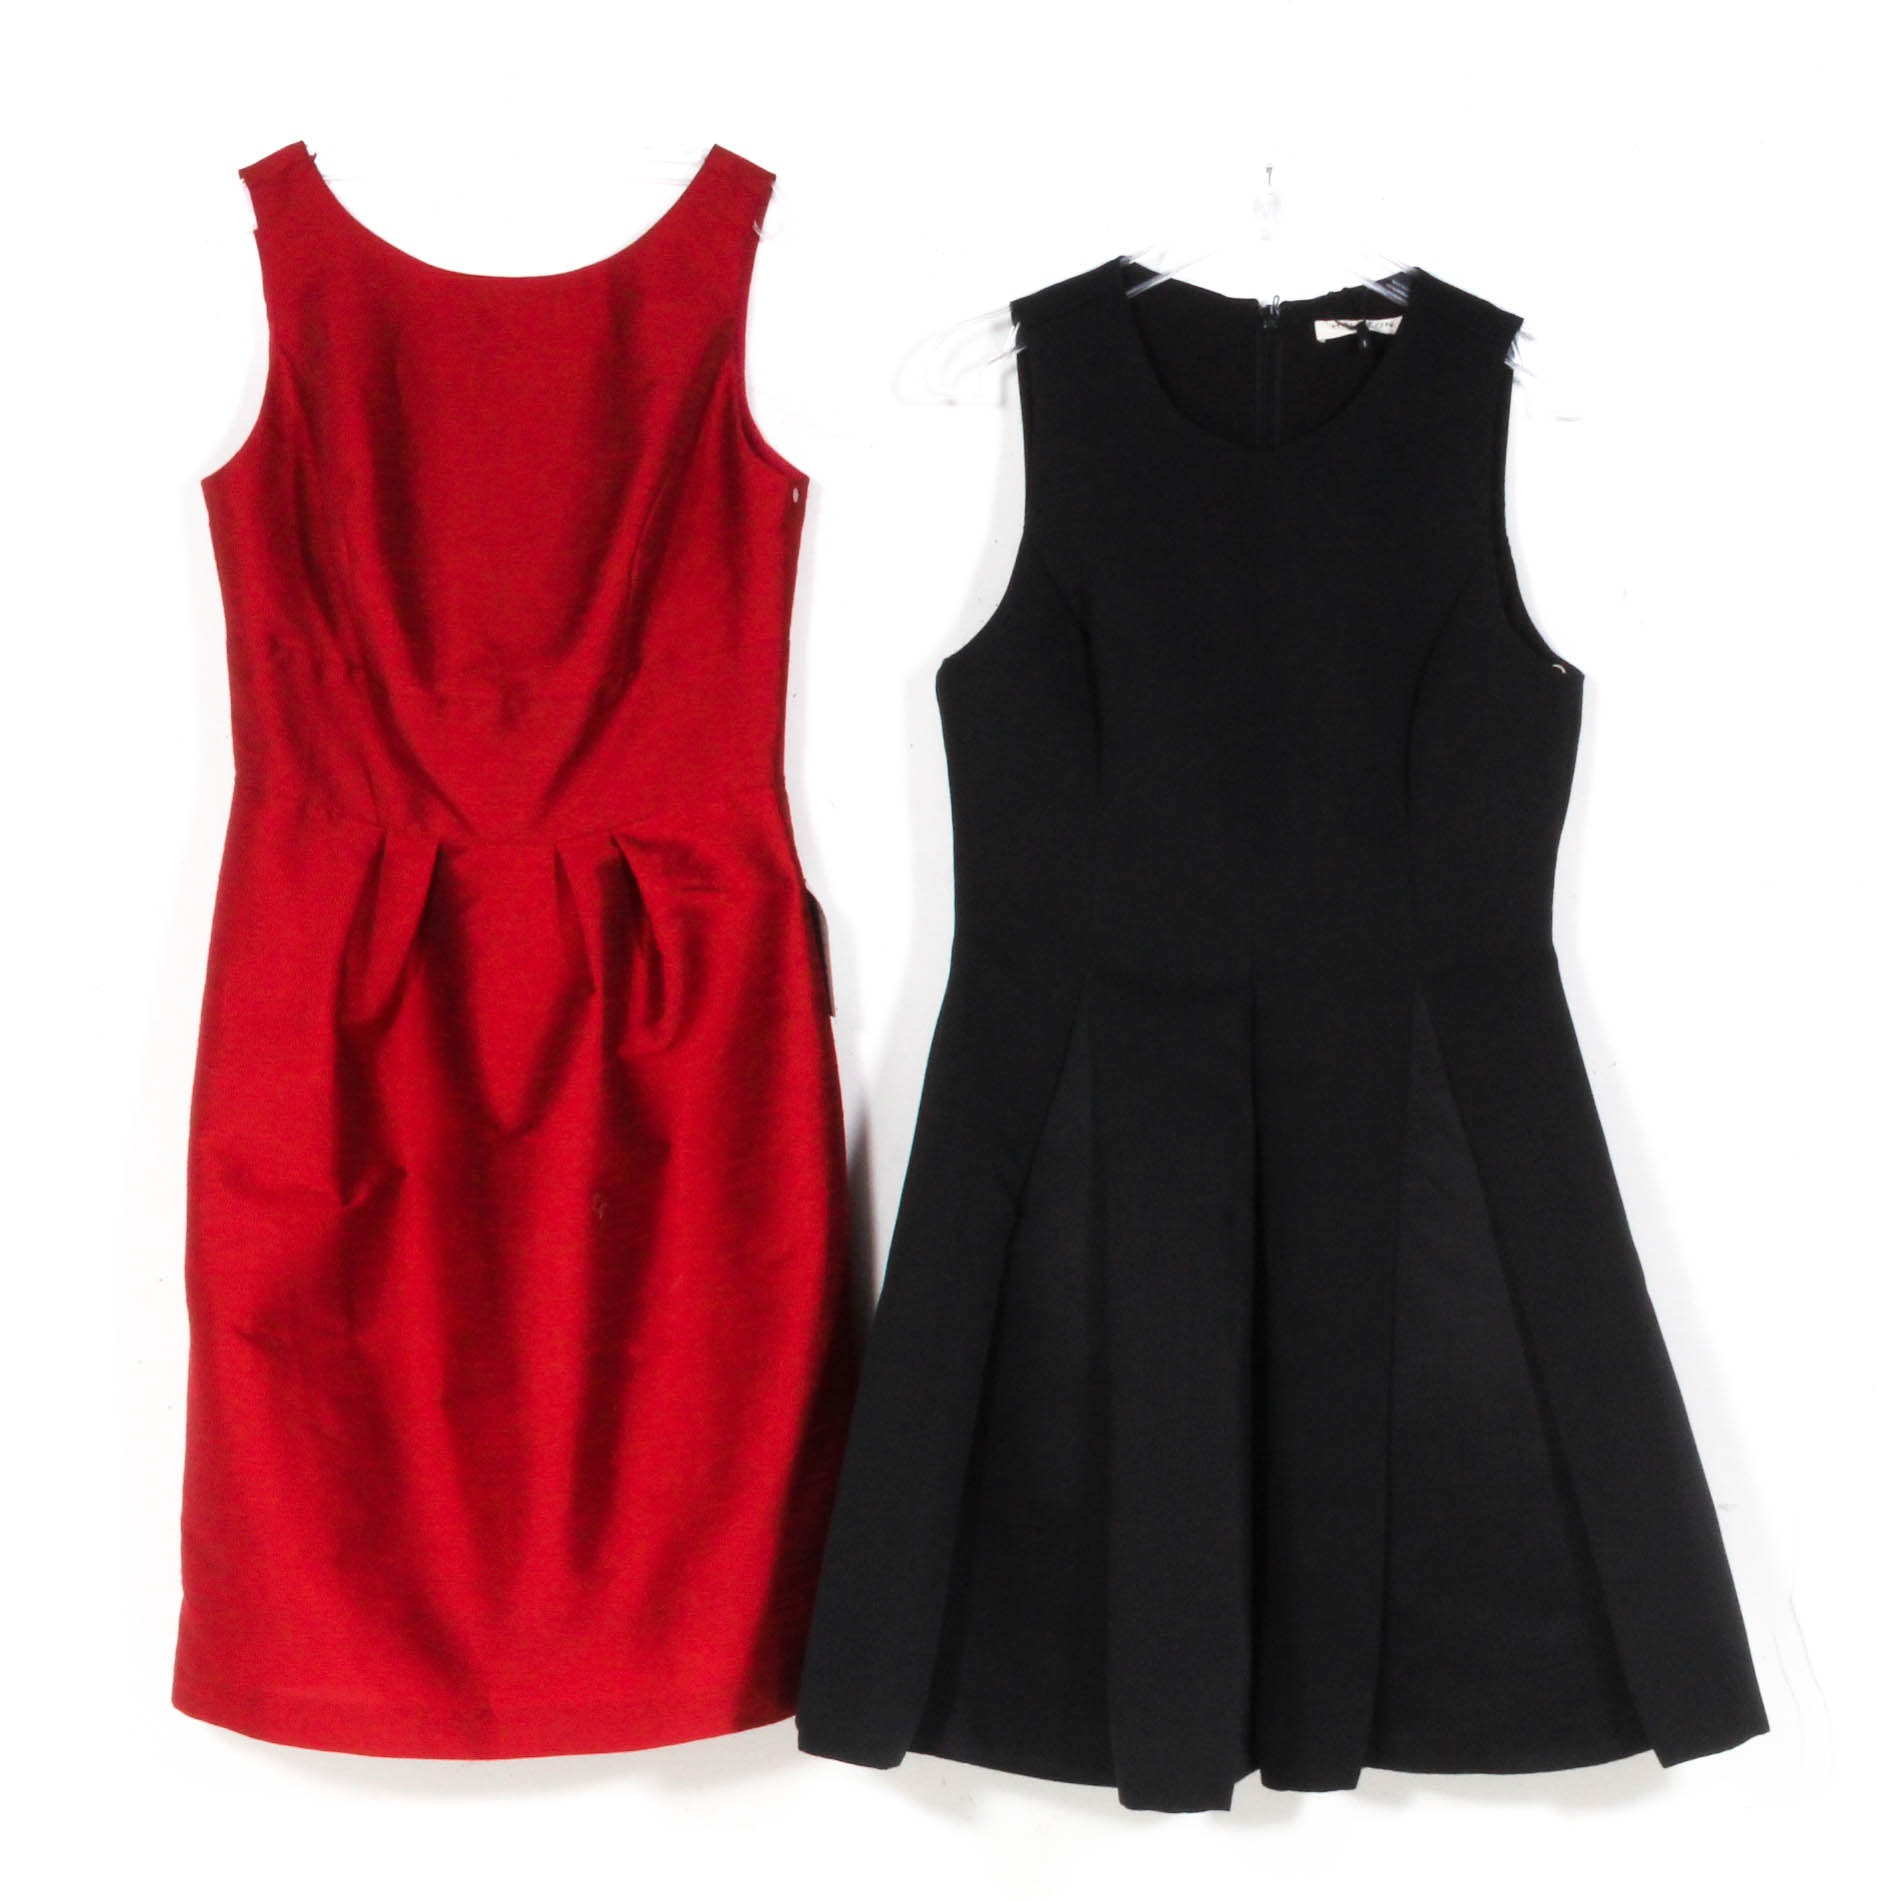 Halston Heritage Black and Alfred Sung Barcelona Red Sleeveless Cocktail Dresses